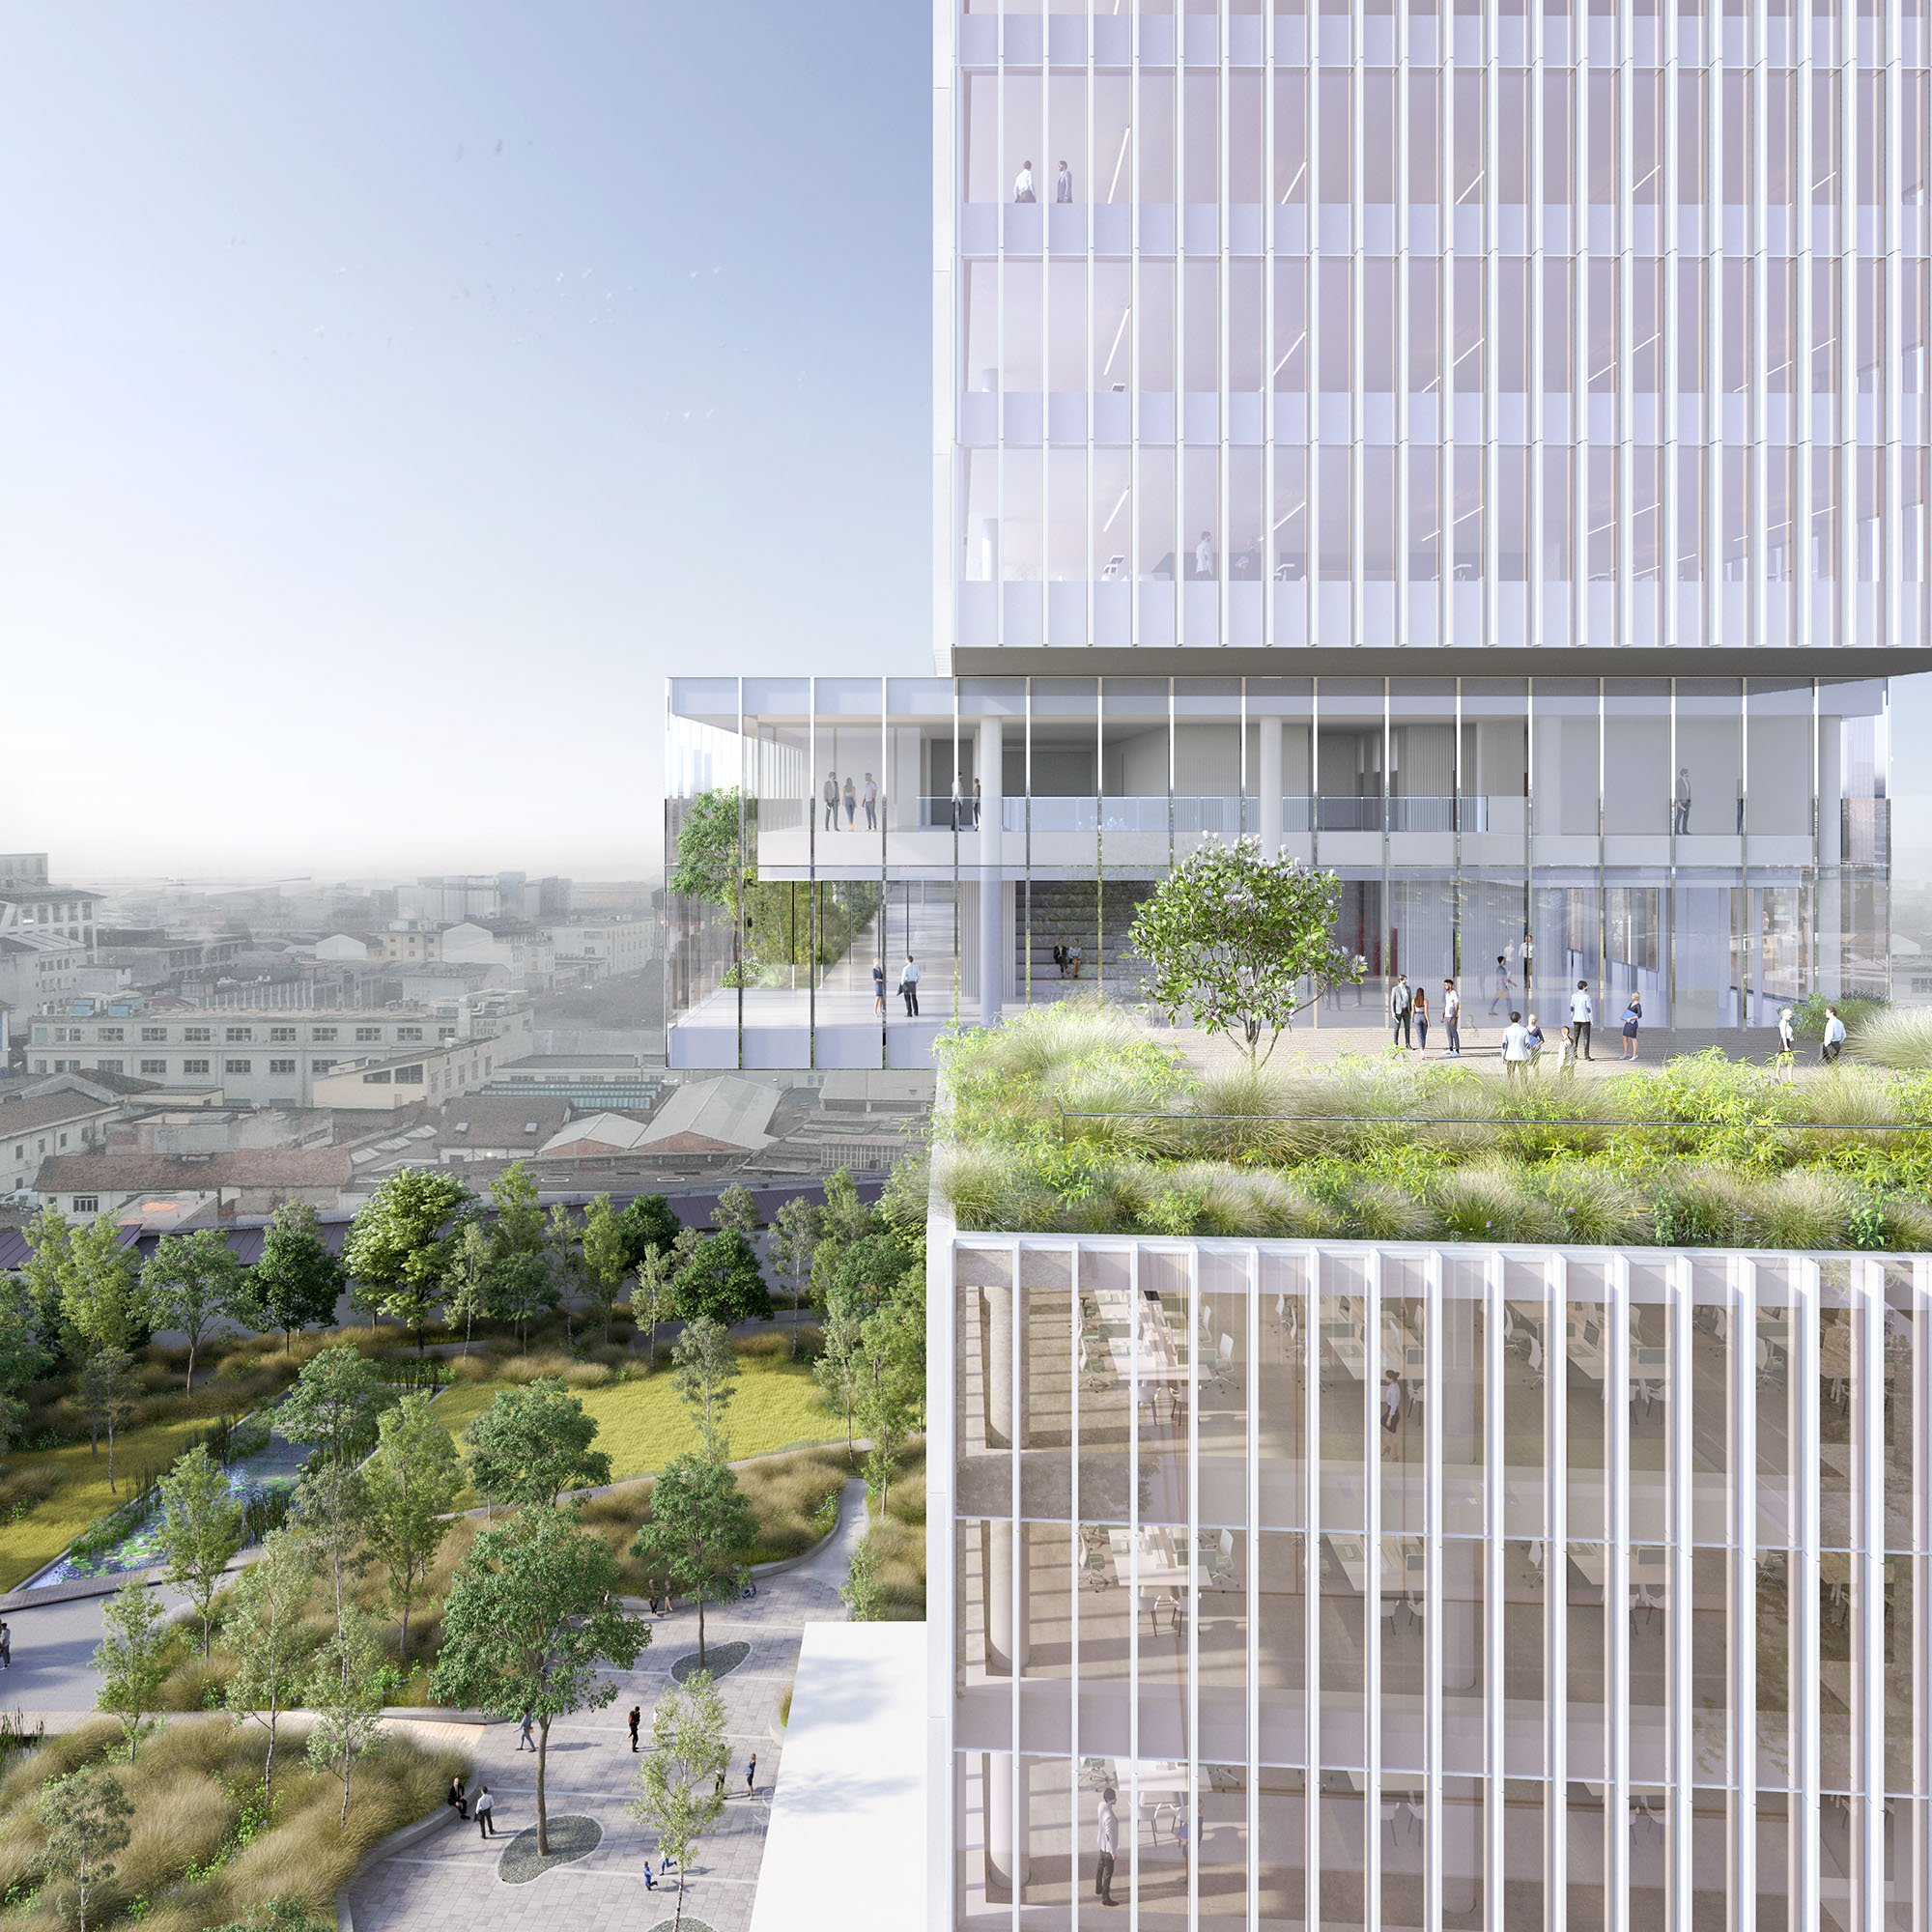 Snam's new Milan headquarters: environmental and innovative